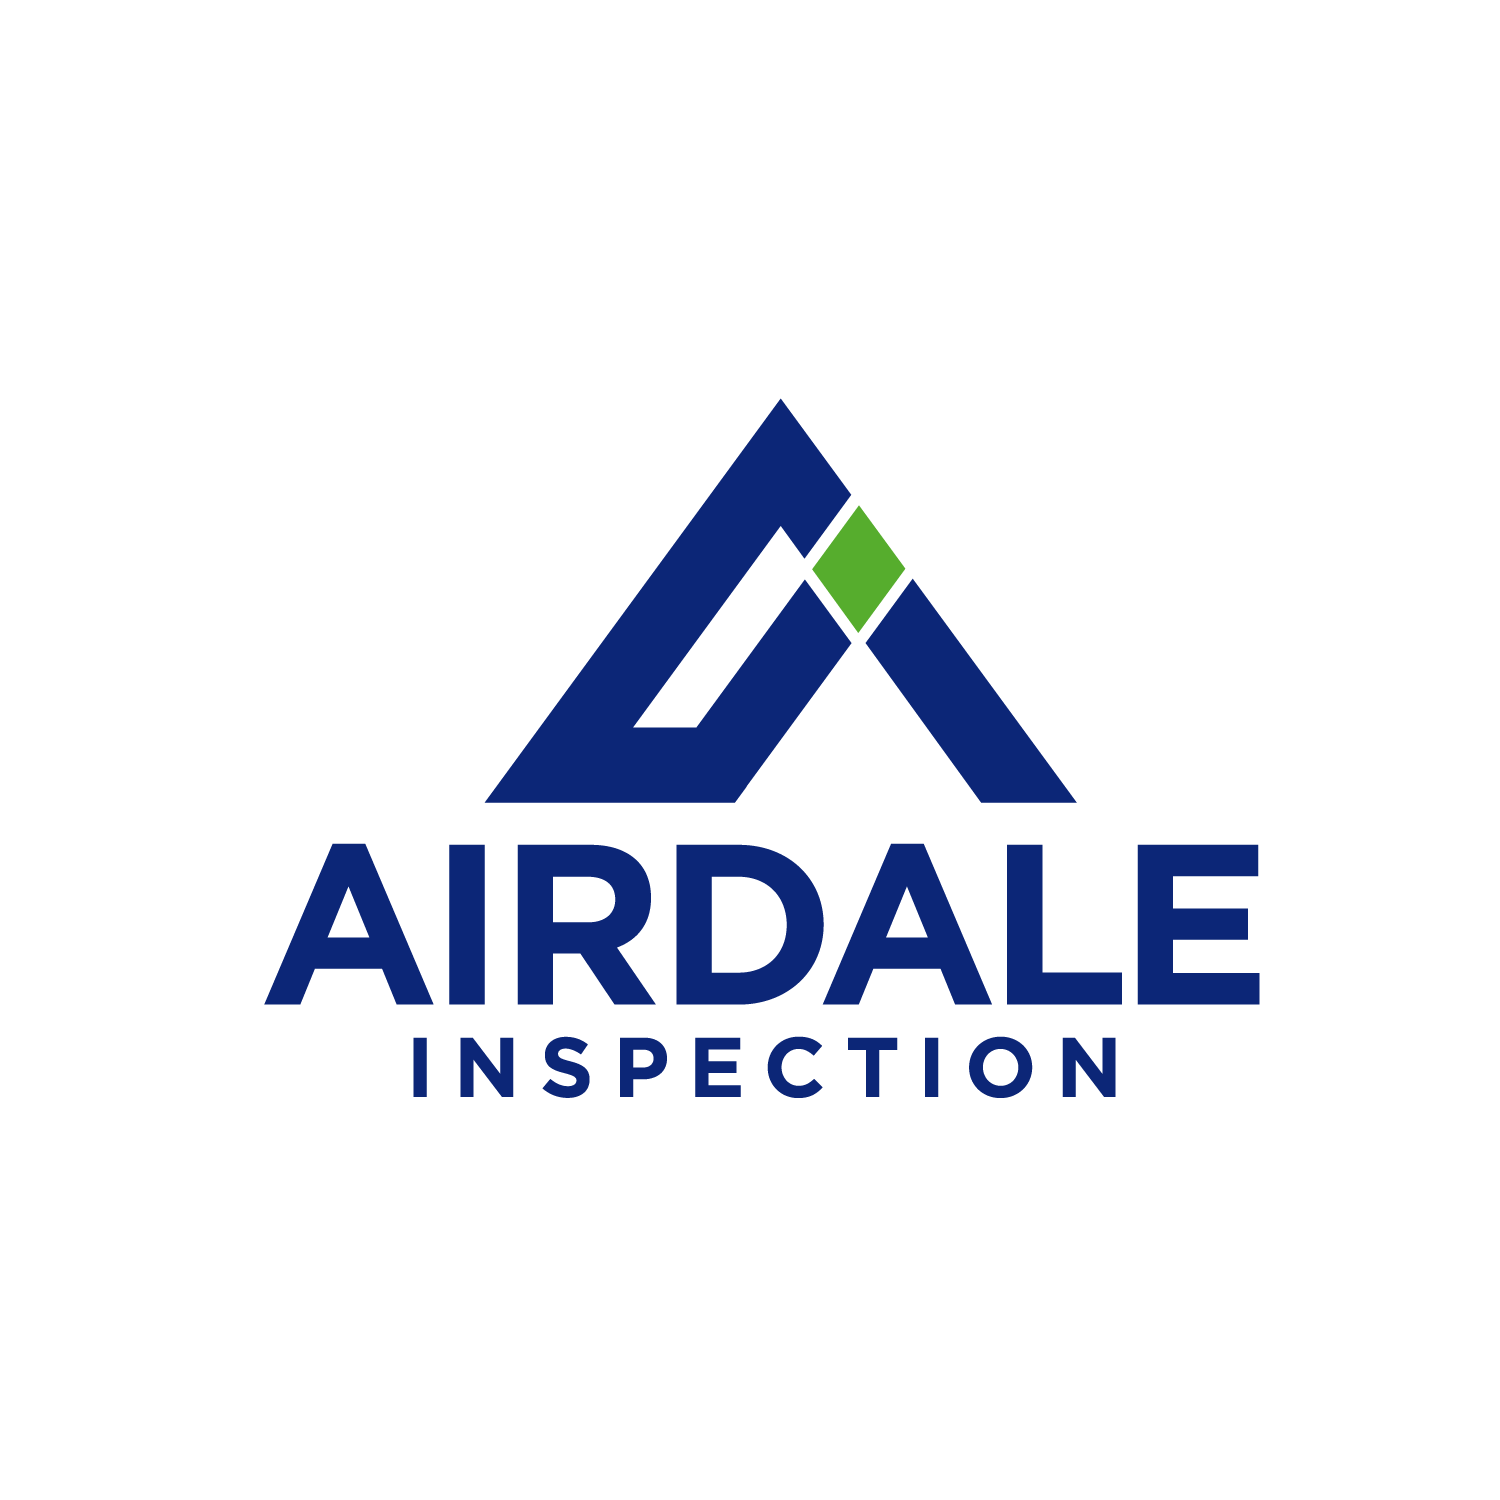 AIRDALE INSPECTION